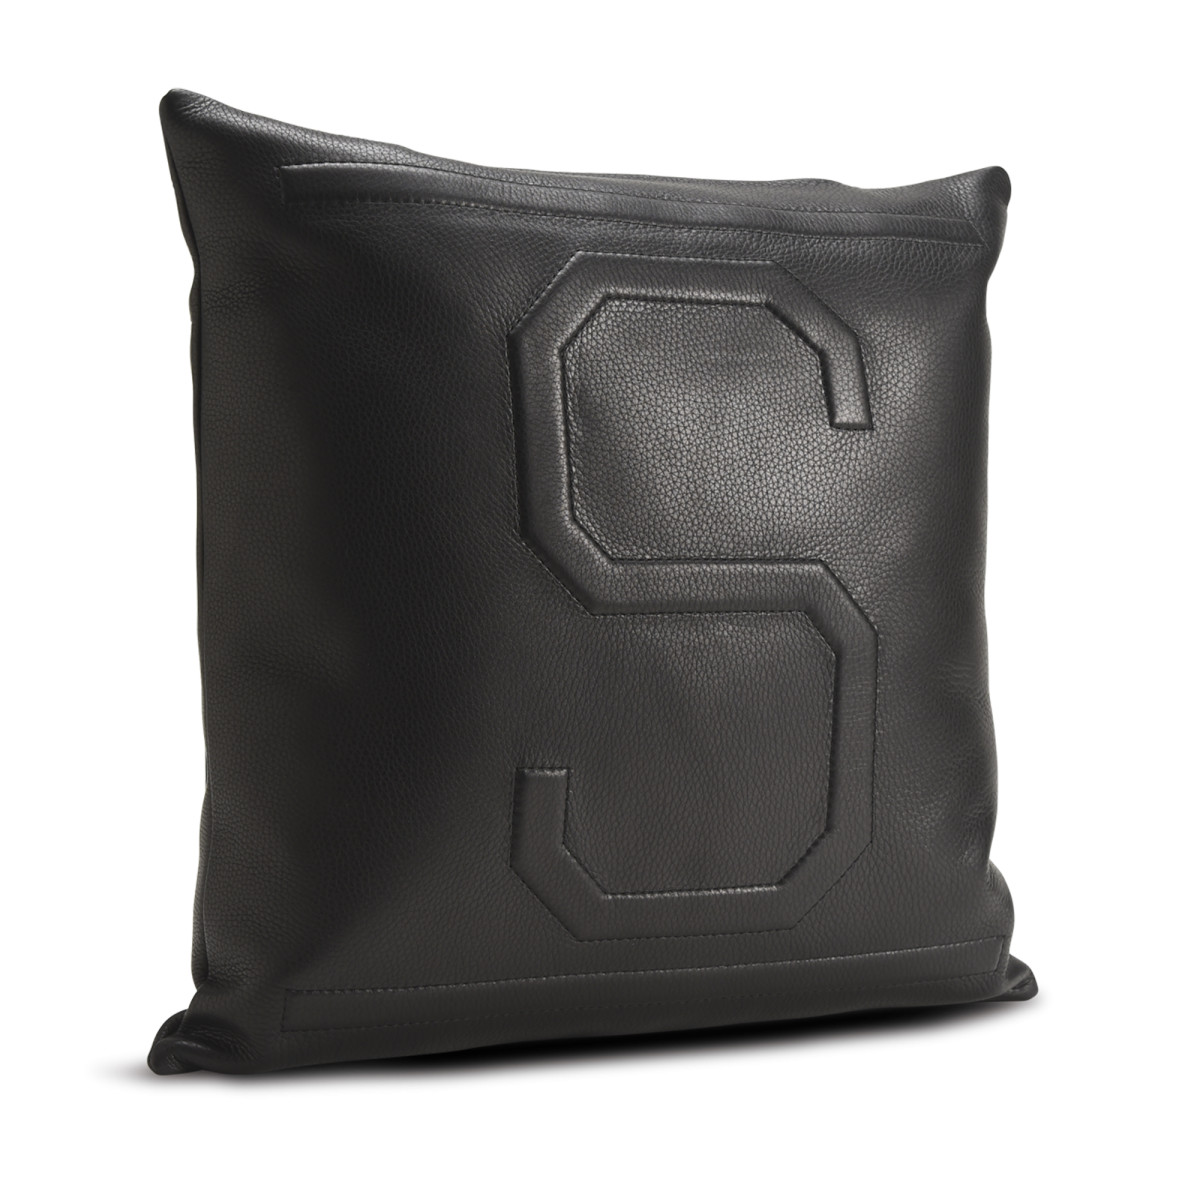 Killspencer Monogram Pillows